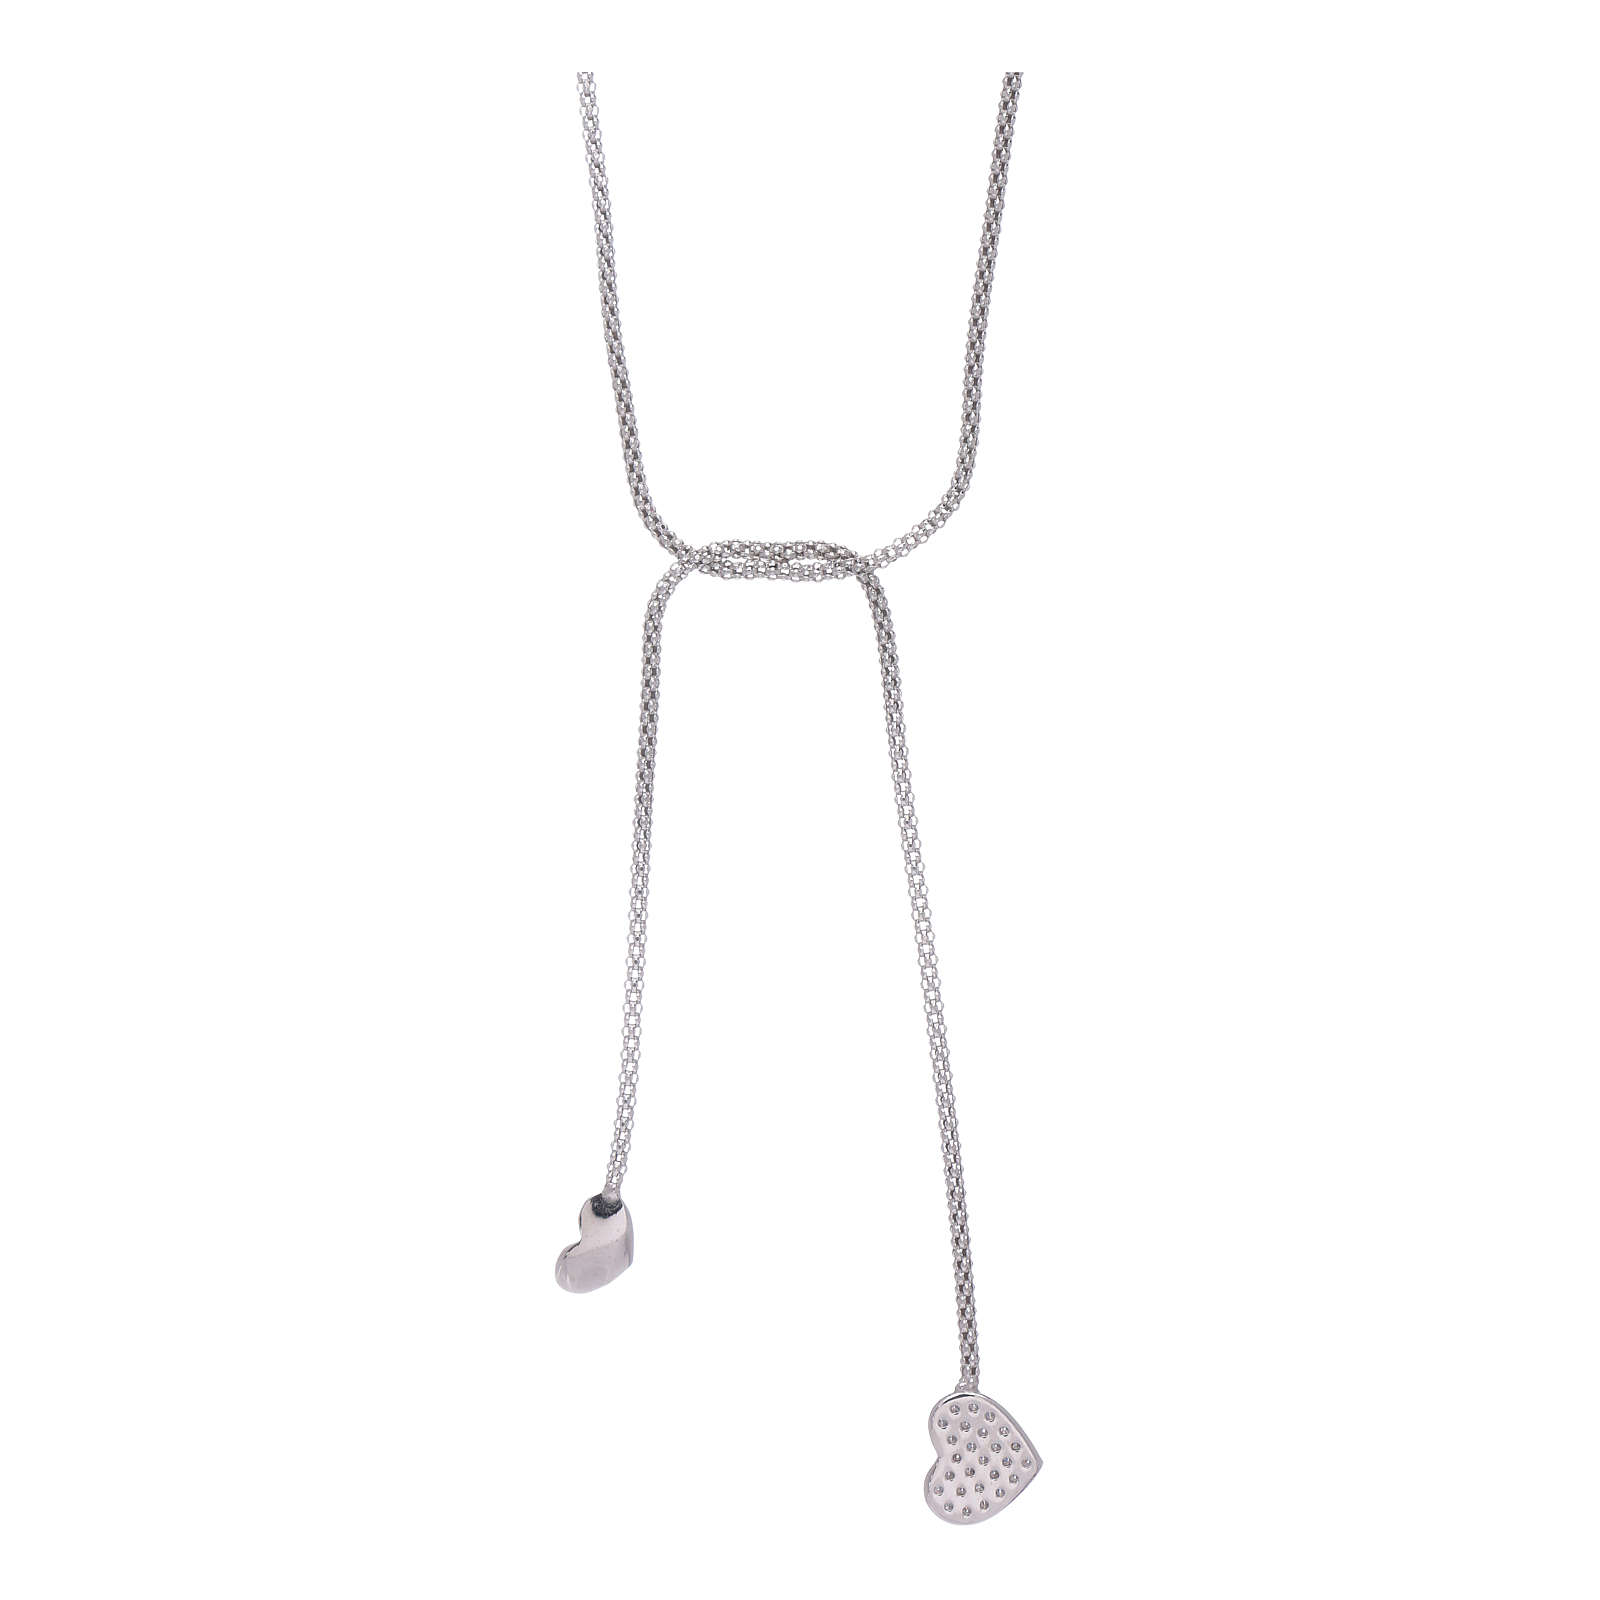 AMEN necklace hug model with hearts decorated with white zircons in 925 sterling silver 4